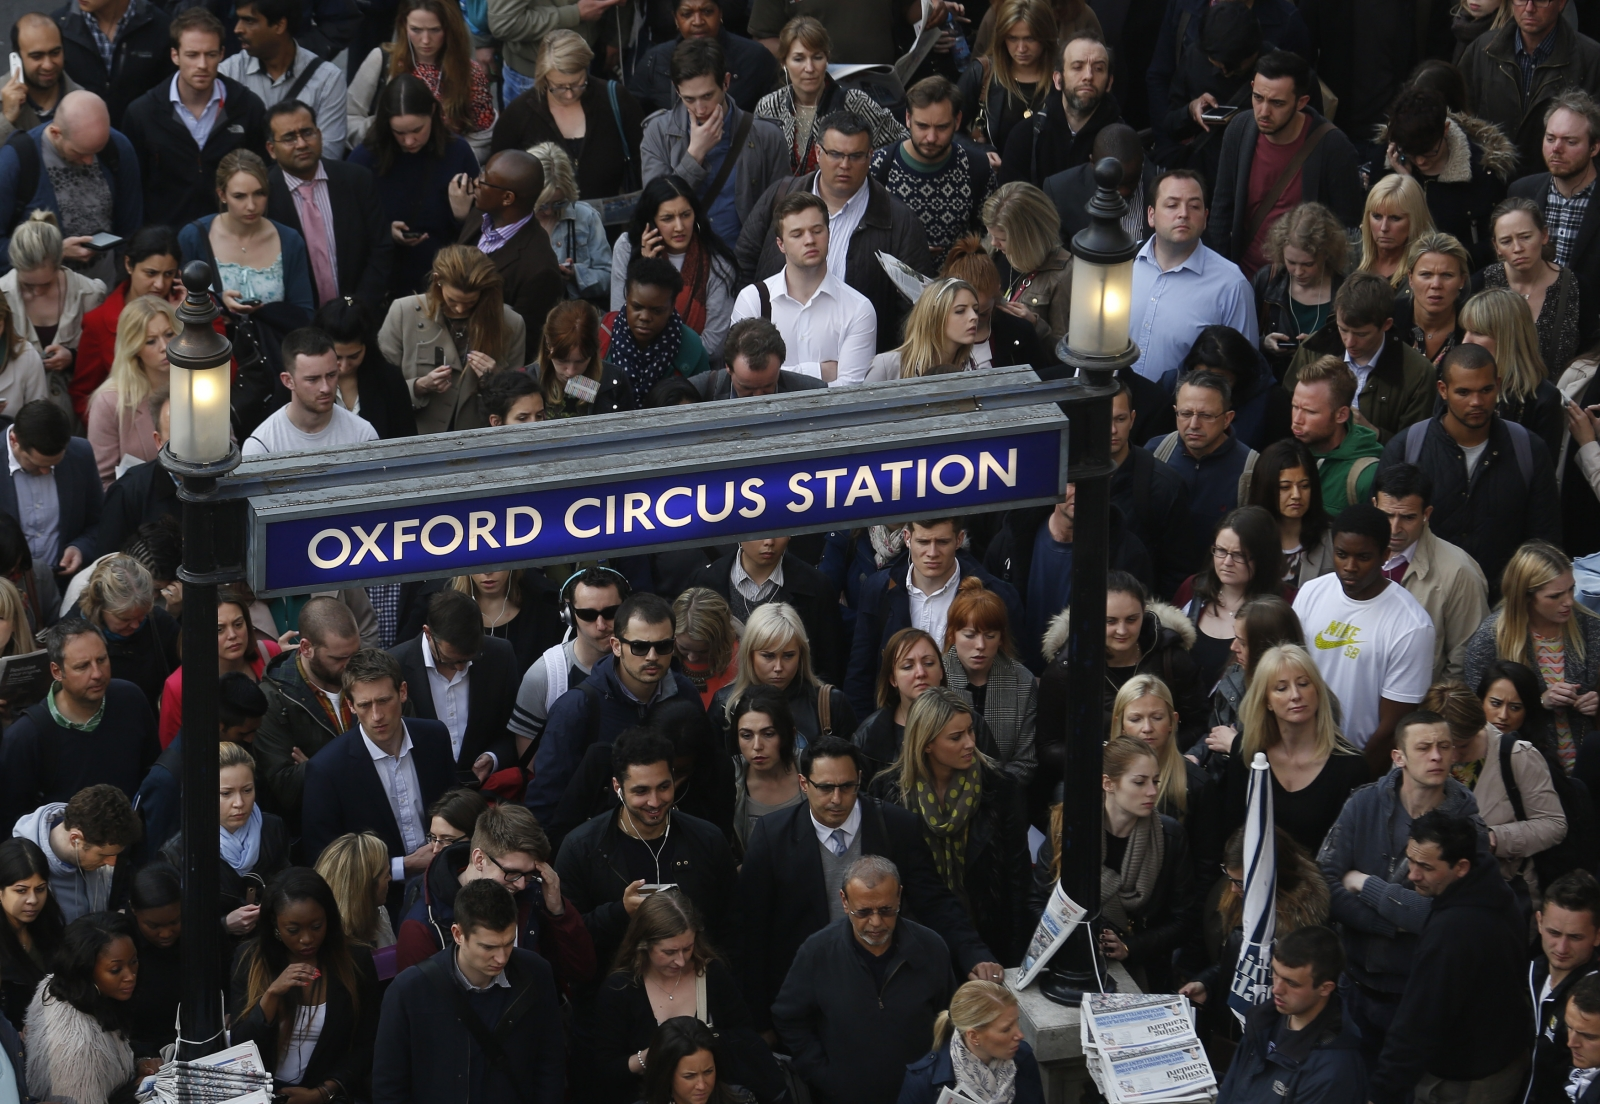 Oxford Circus tube station